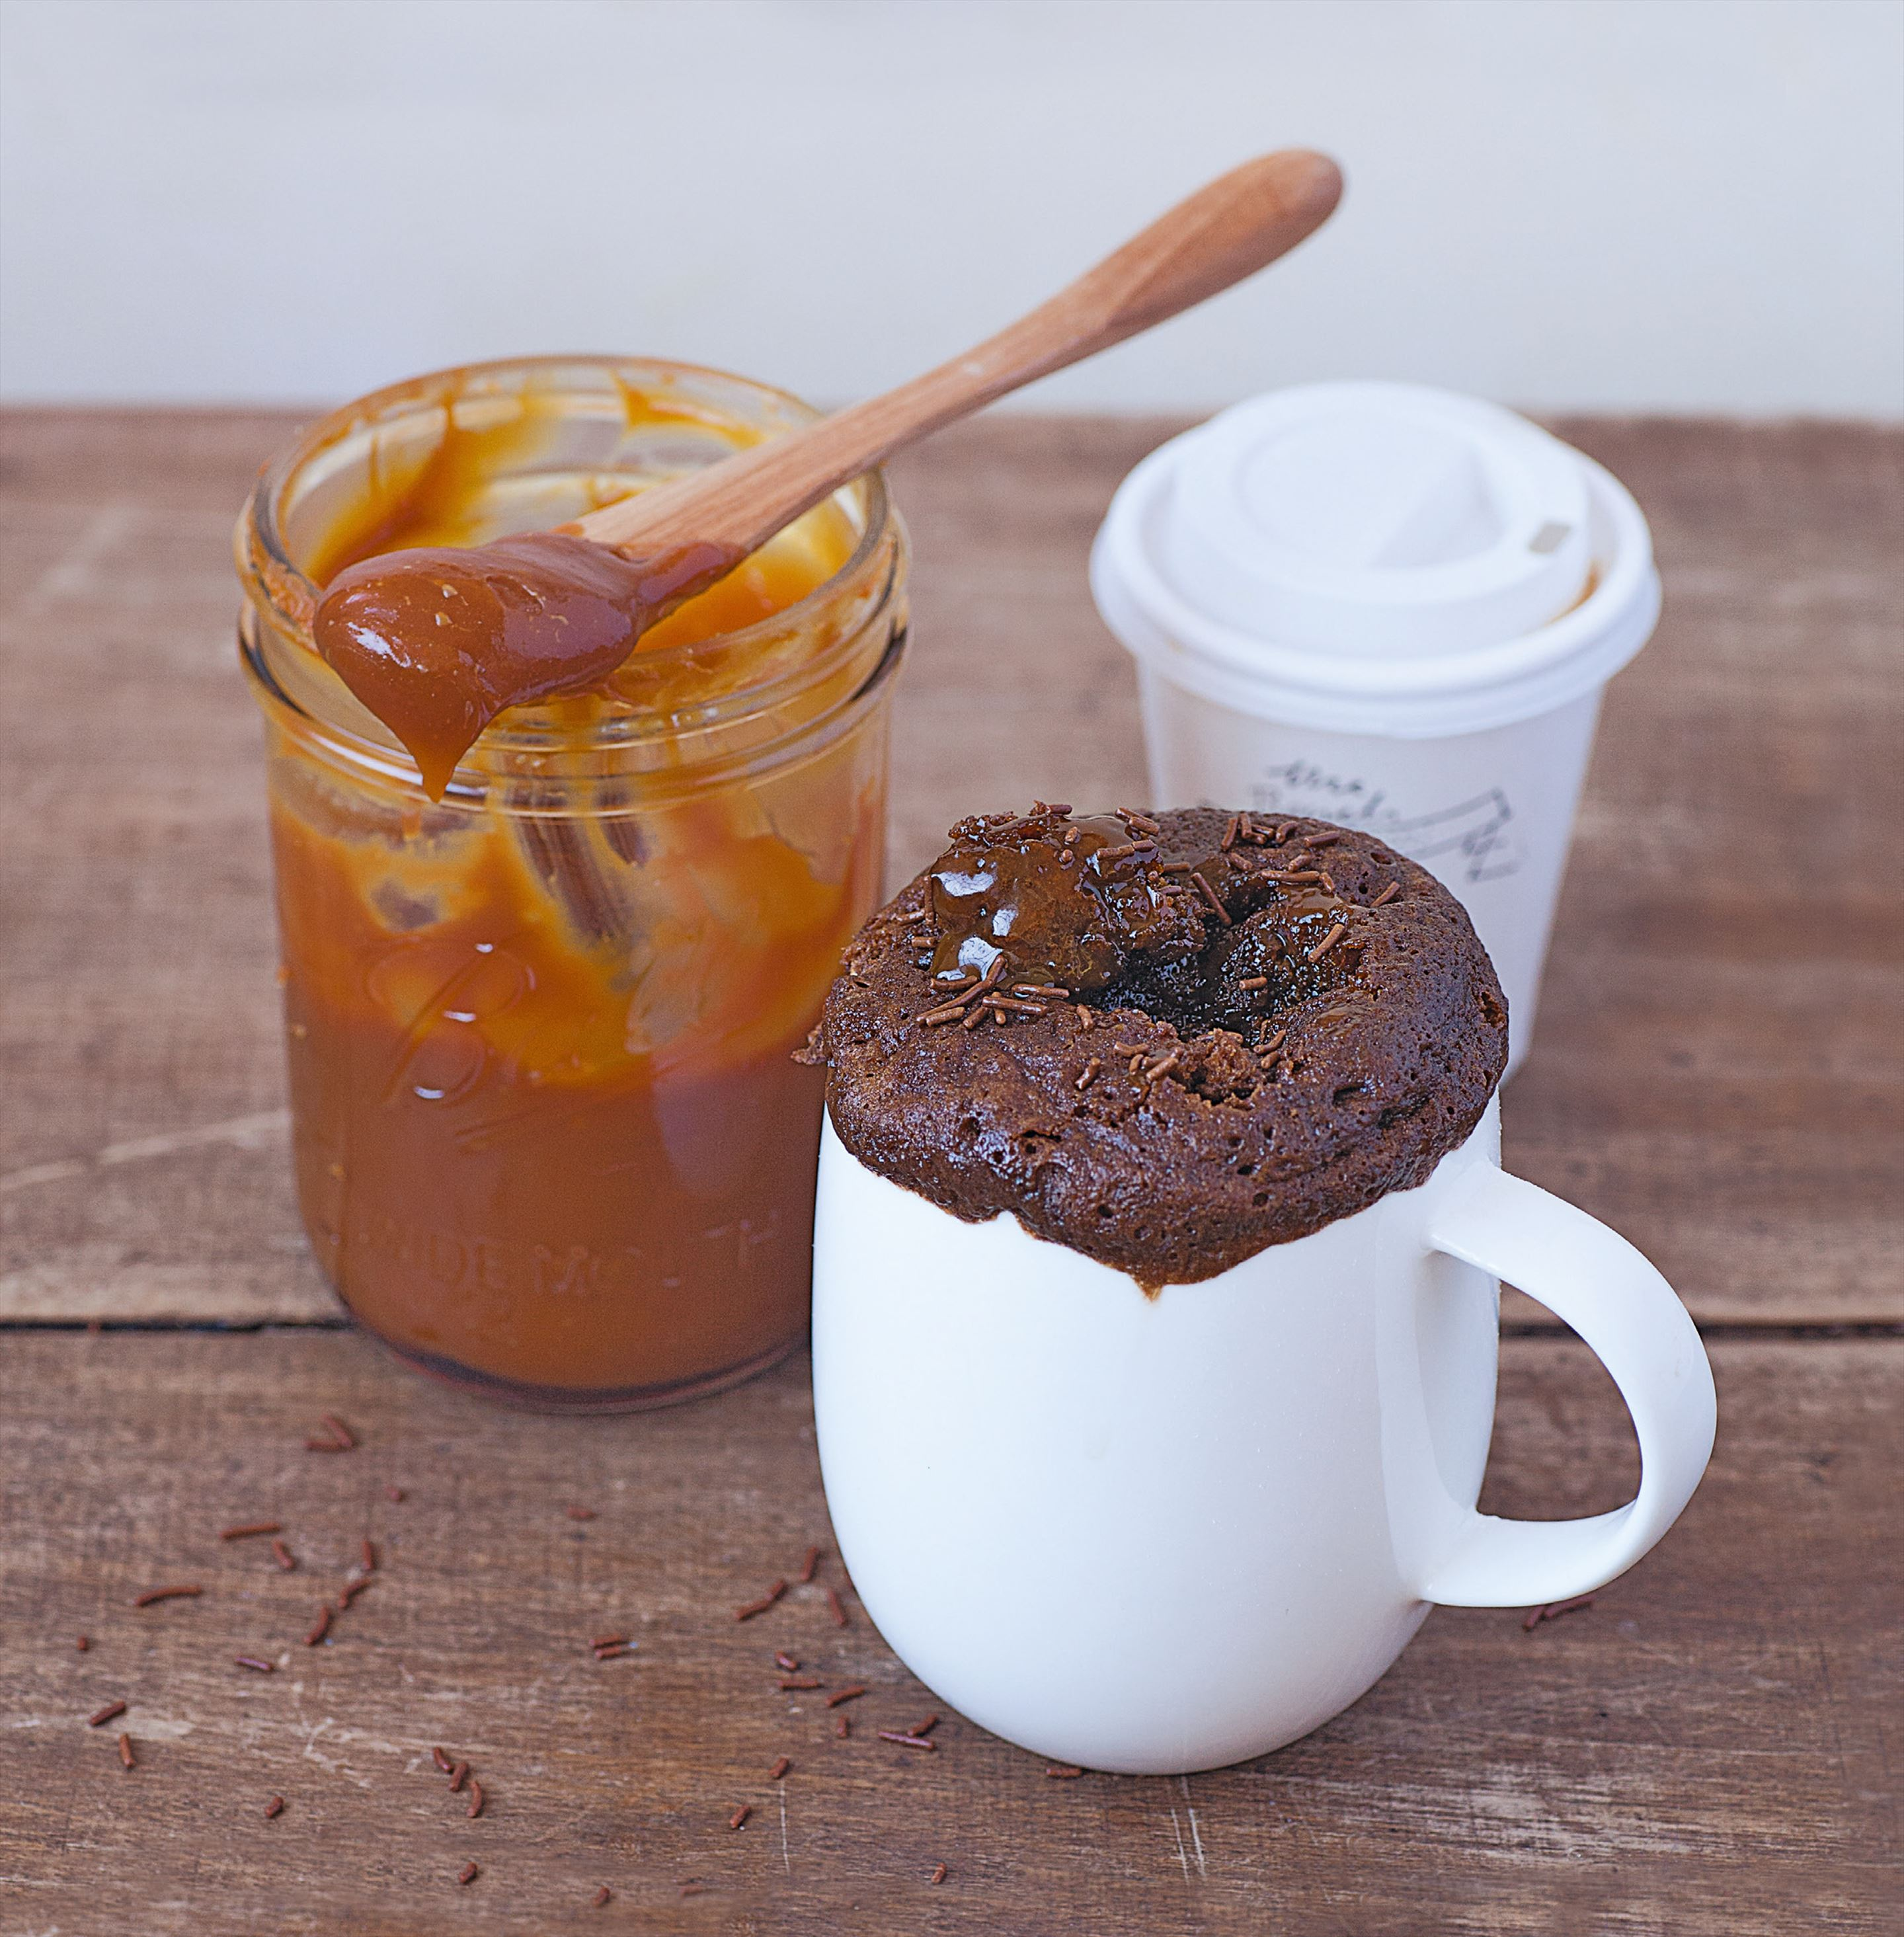 Milk chocolate mug cake with a salted caramel middle